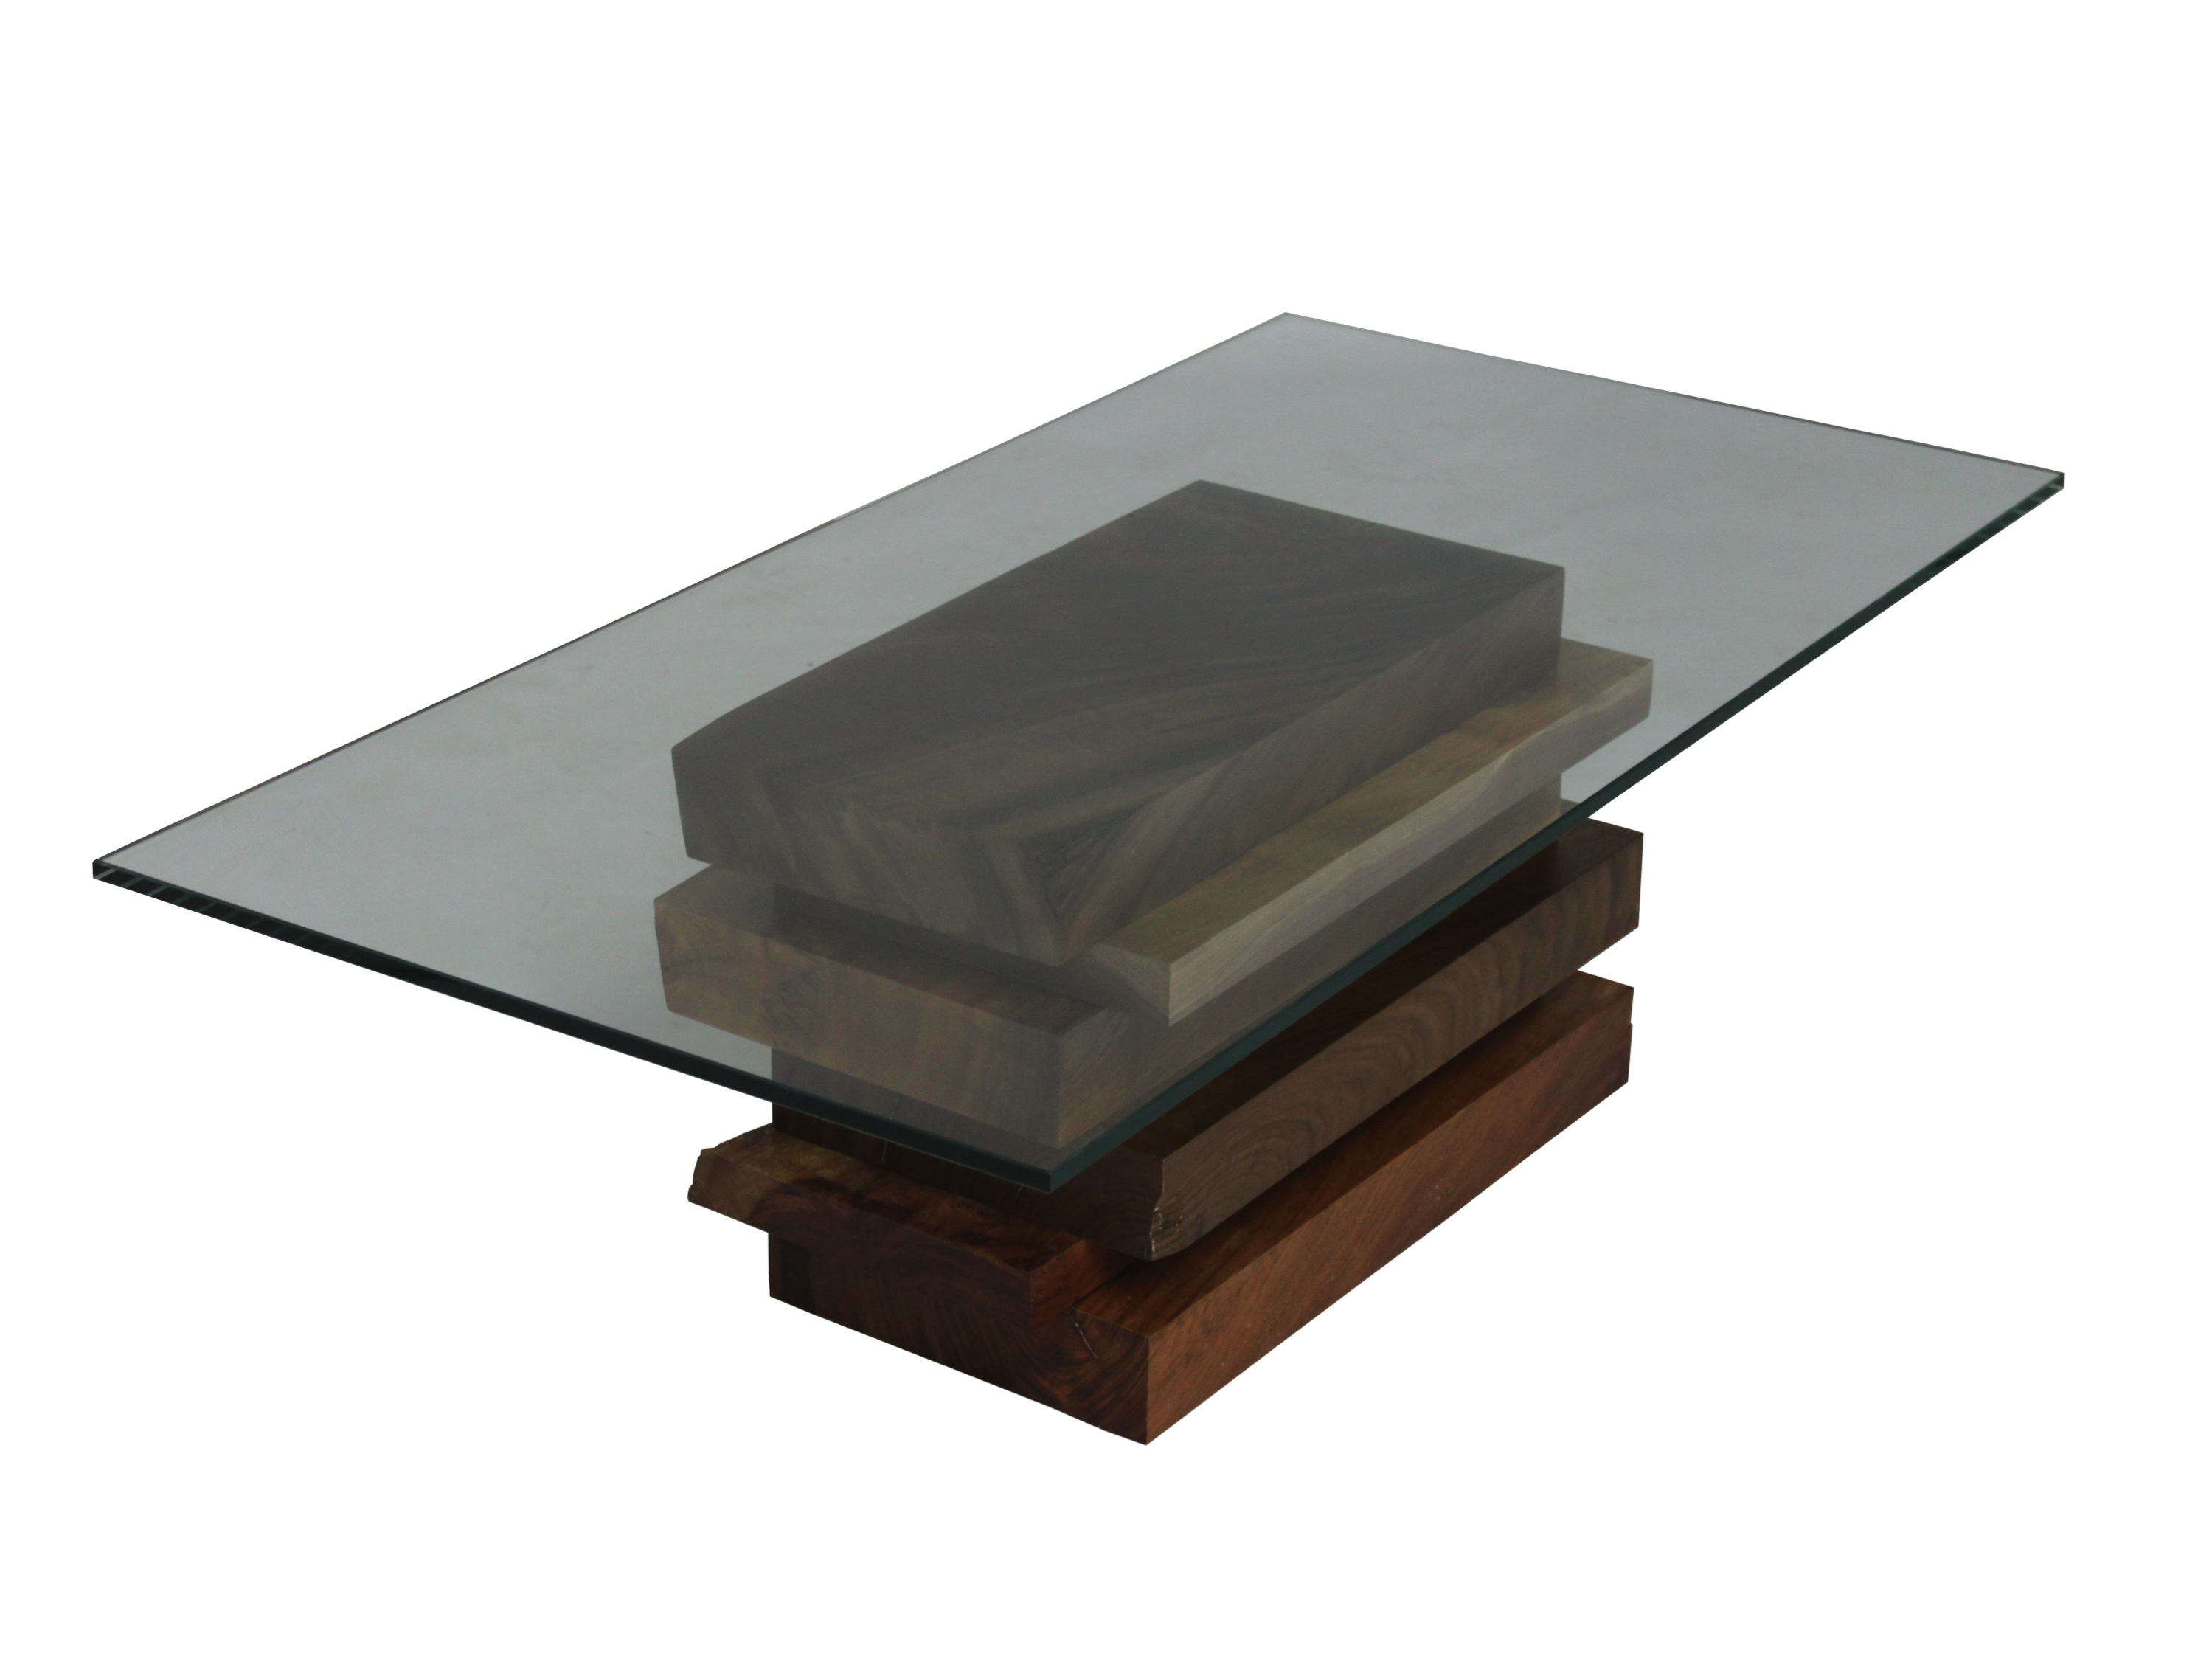 Coffee-Tables-Glass-and-Wood-made-with-salvaged-wood-slabs-in-raw-edge-or-straight-edges-you-keep-your-things-organized-and-the-table-top-clear (Image 5 of 10)